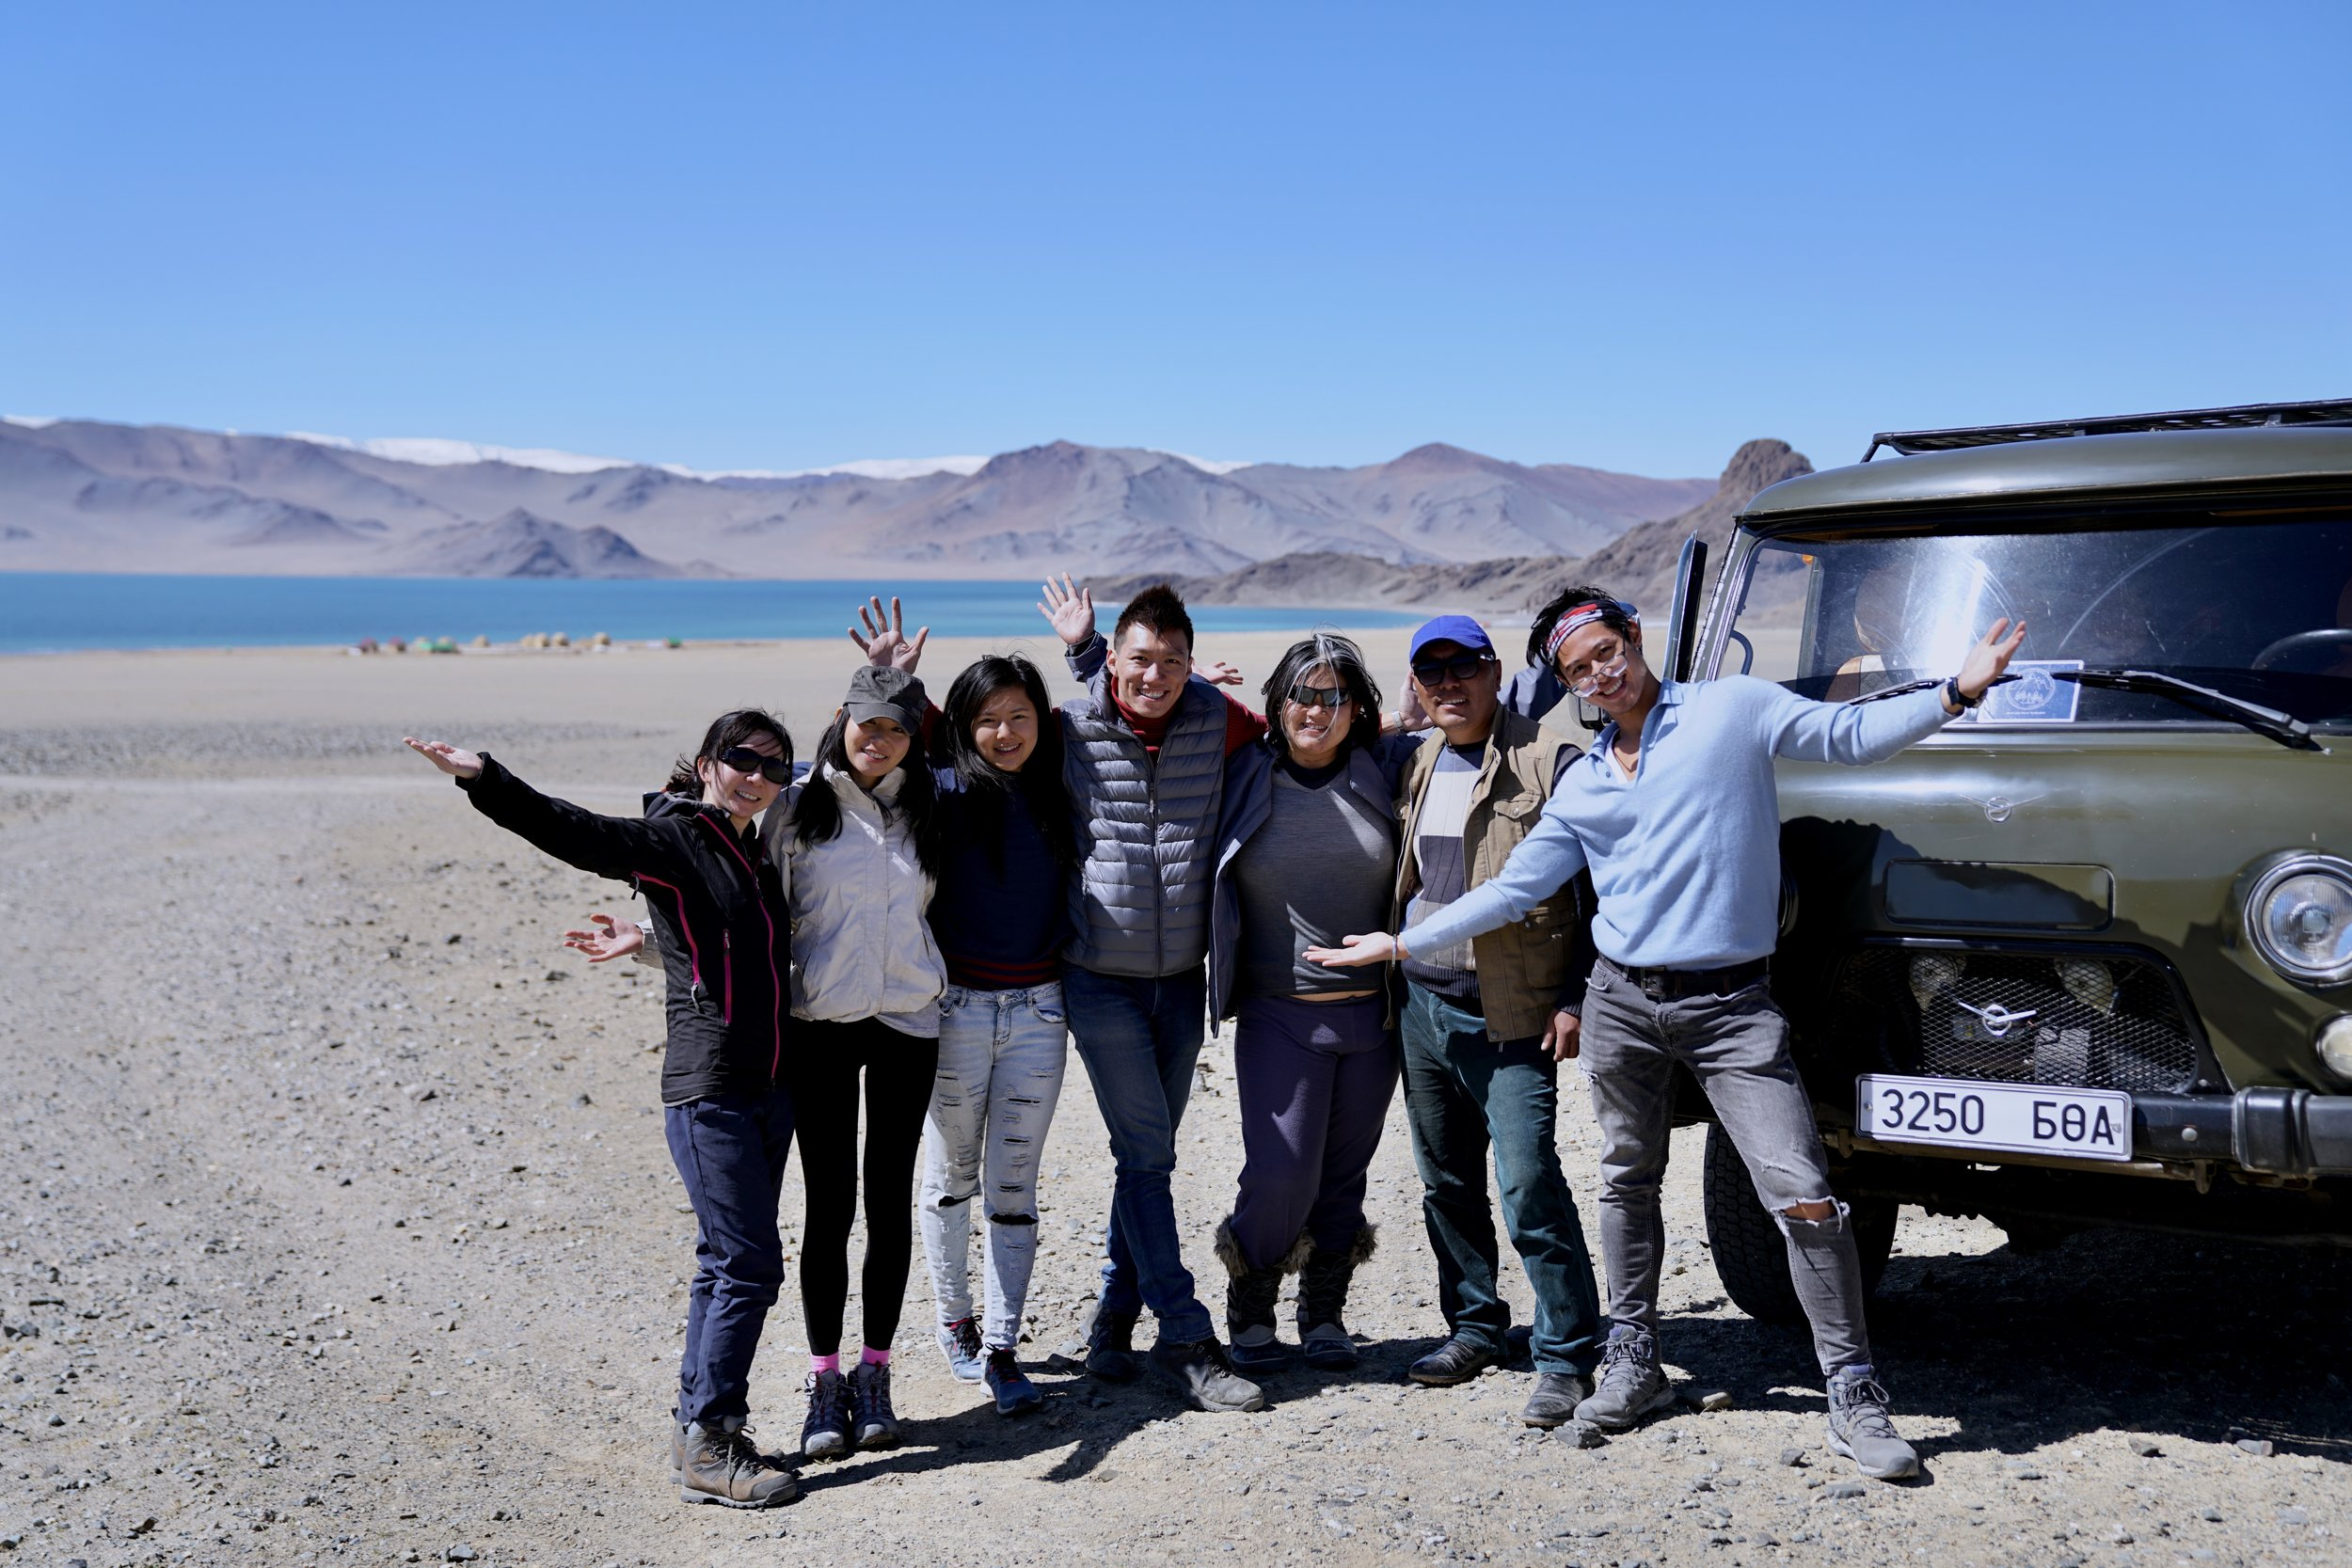 Embark on an experiental journey with our specially curated group expeditions where you meet new friends. -